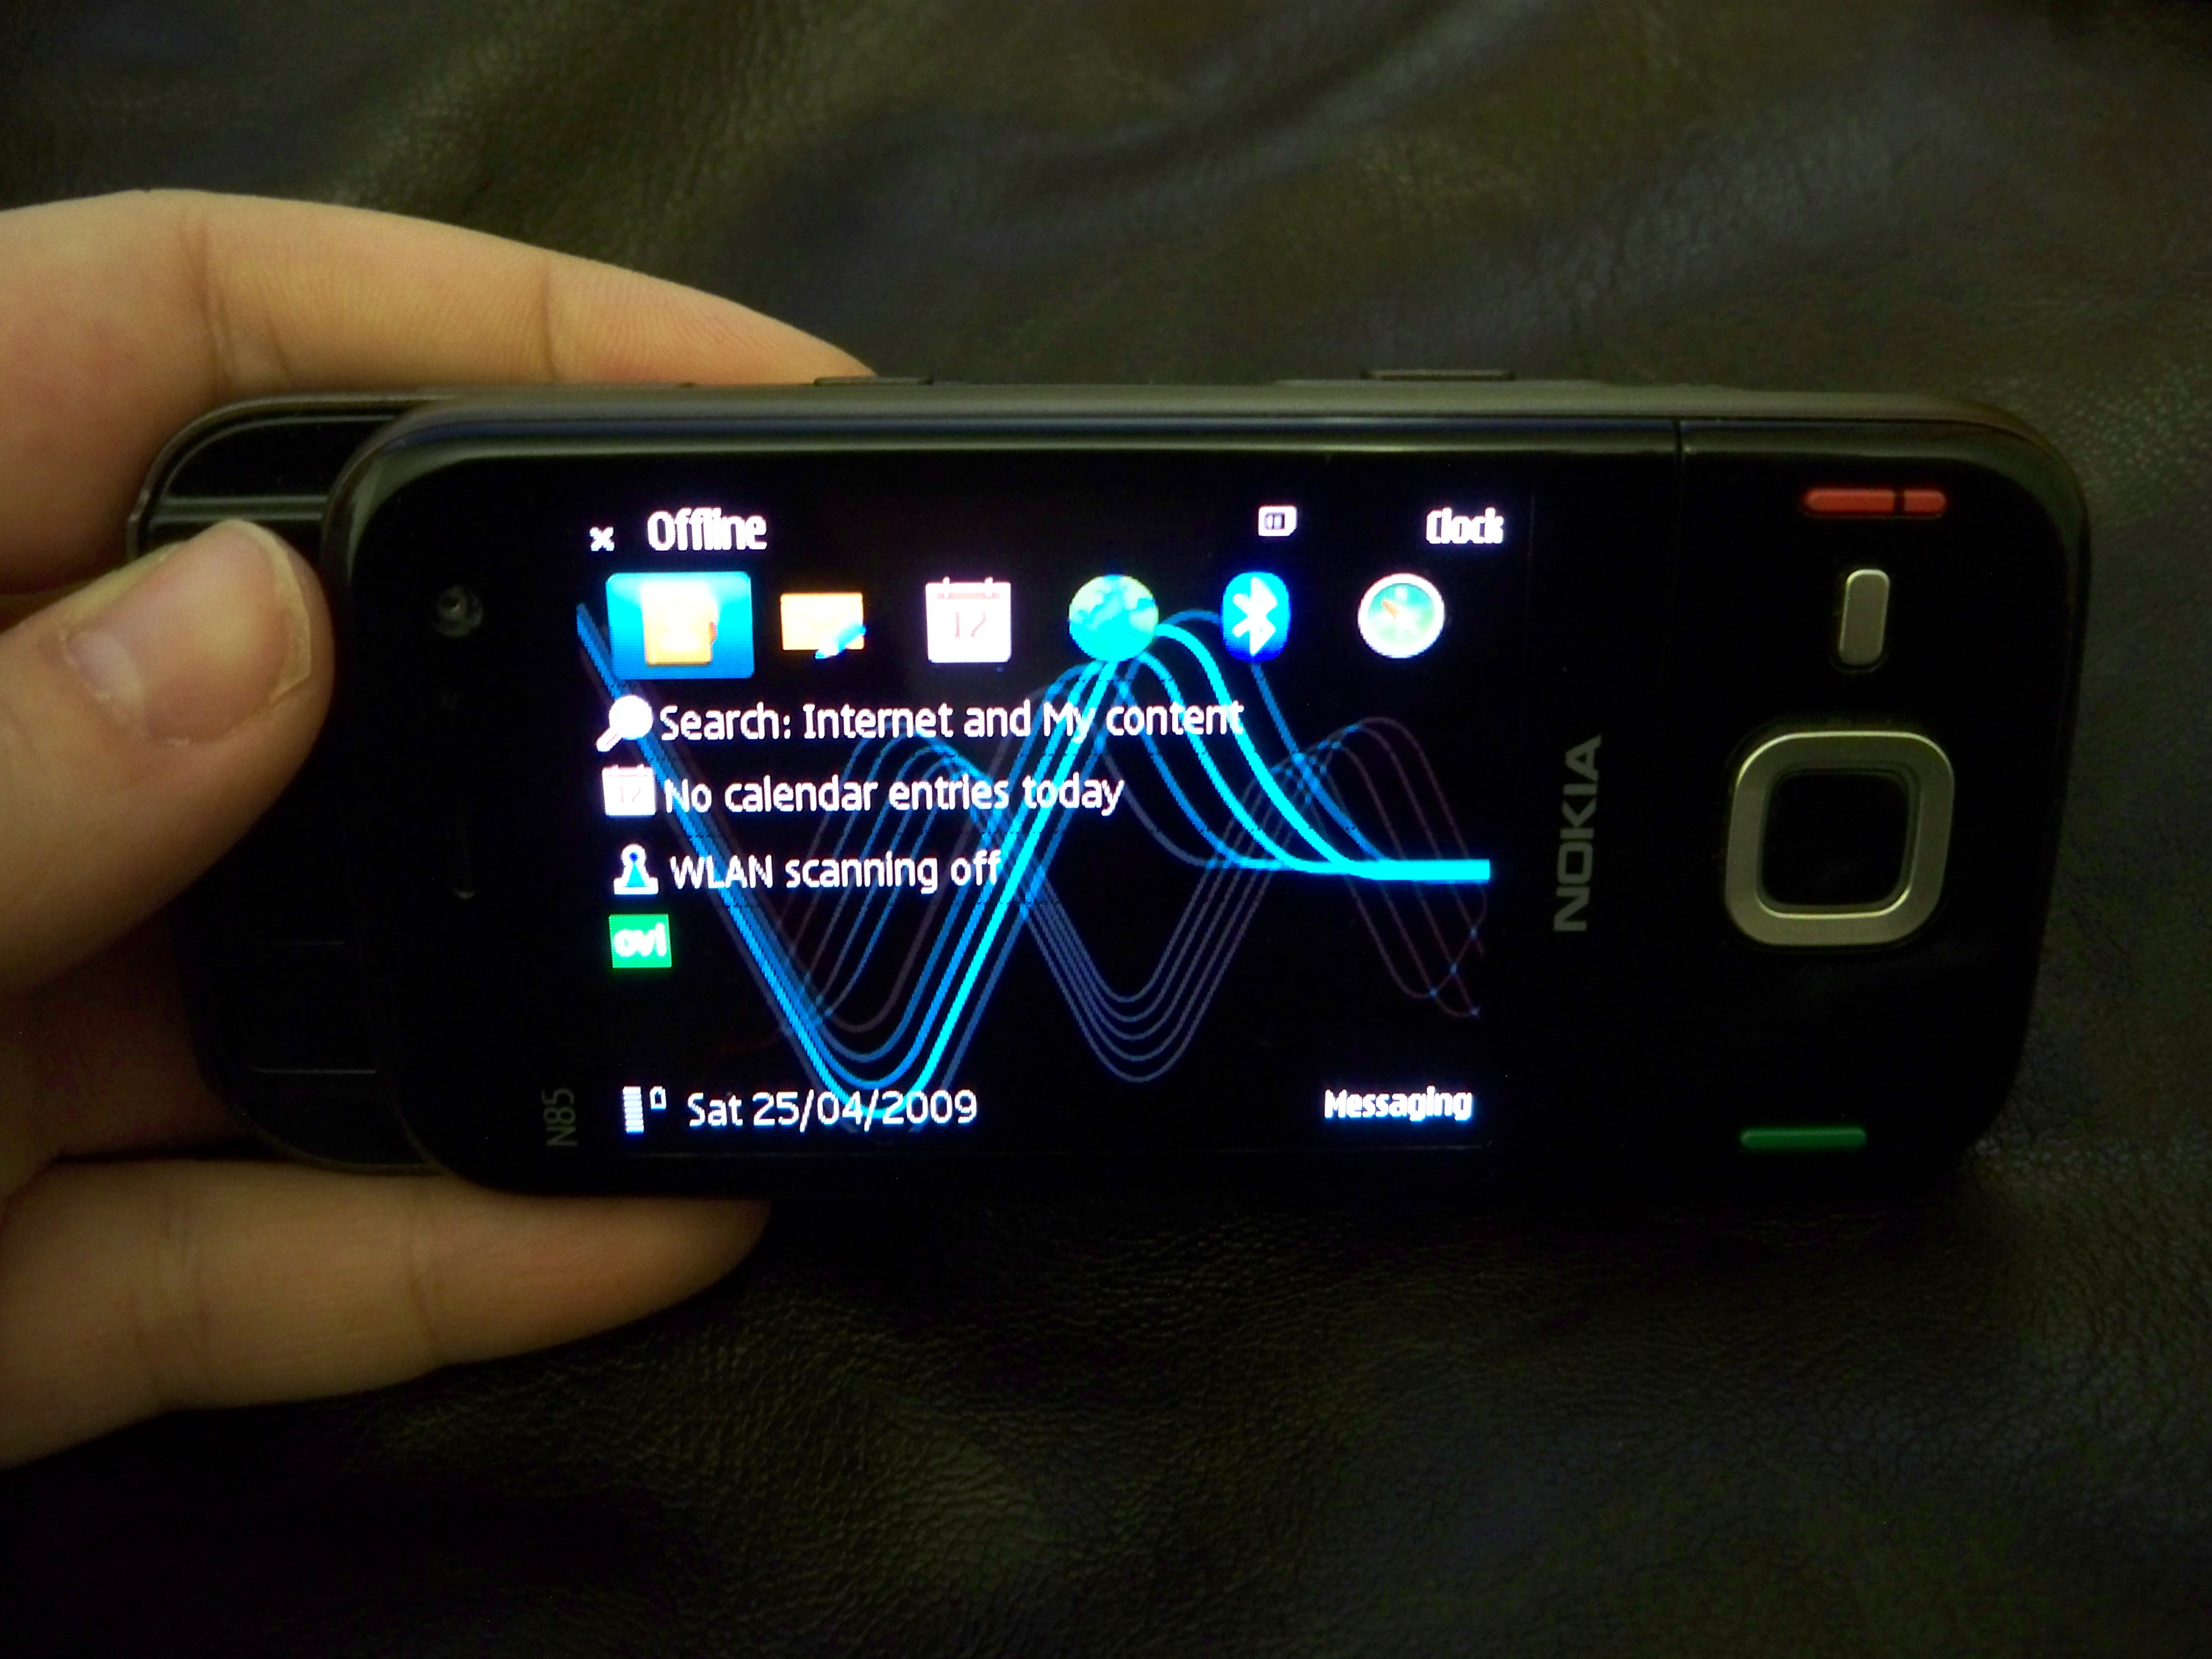 Nokia Theme Creator For Nokia S60 And Series 40 Phones